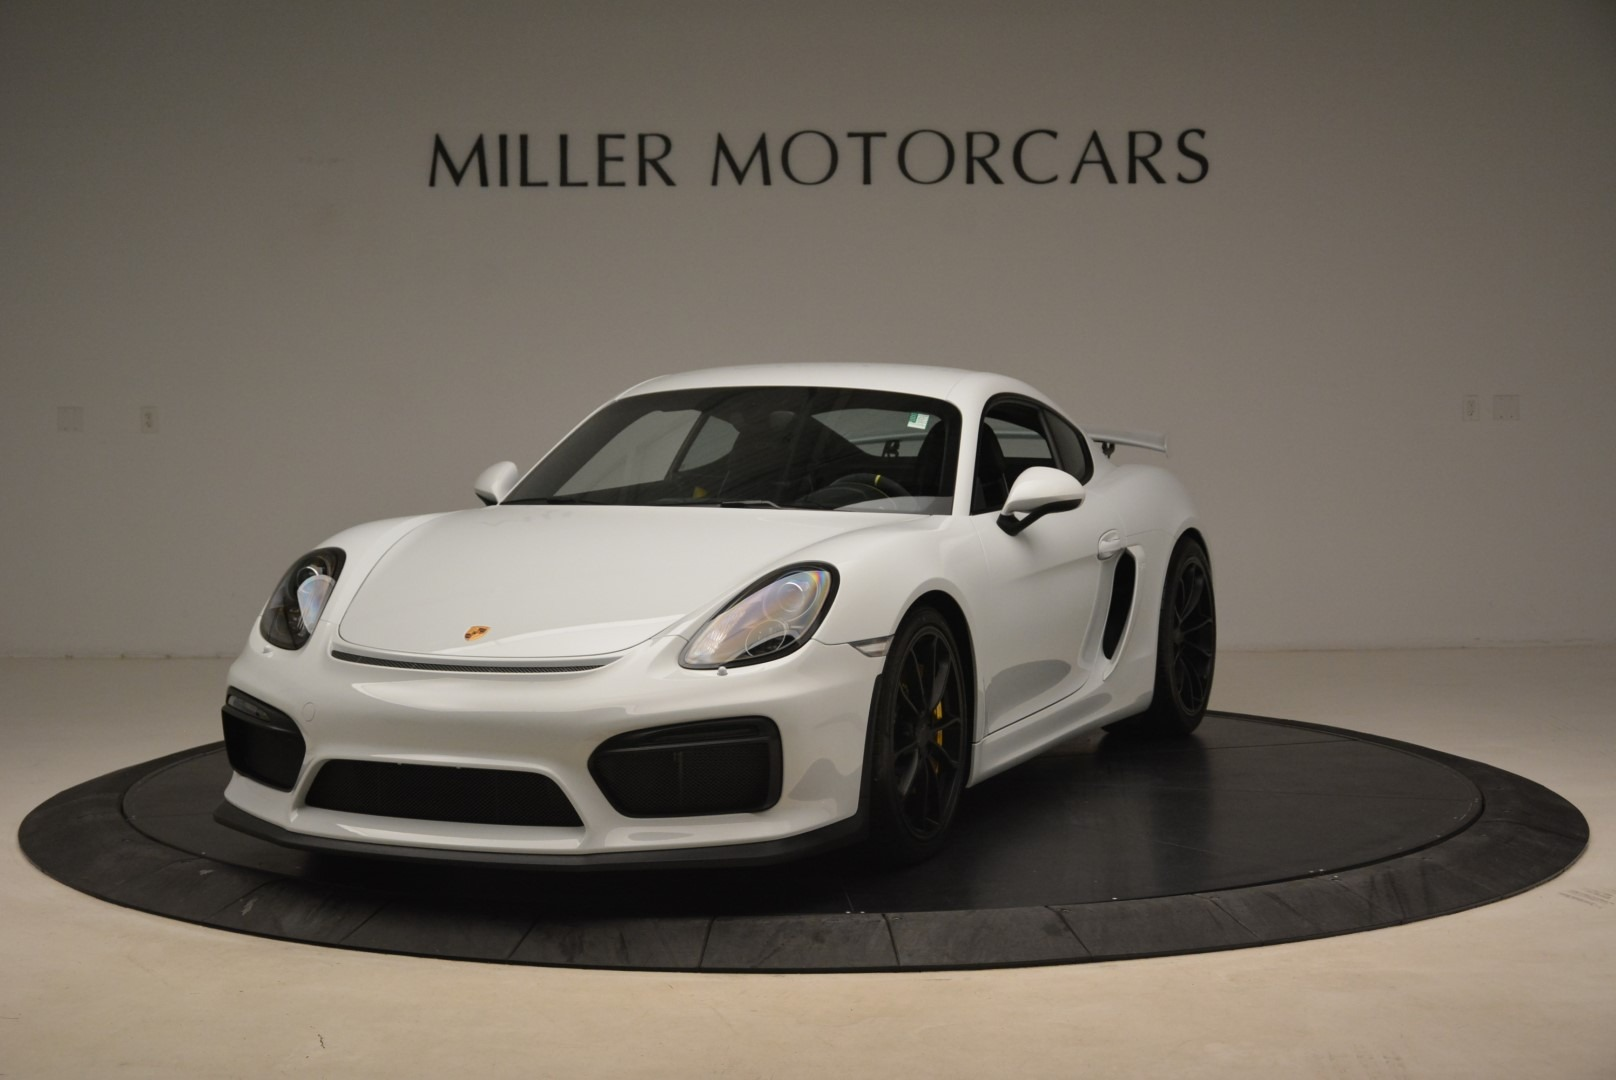 Used 2016 Porsche Cayman GT4 for sale Sold at Bentley Greenwich in Greenwich CT 06830 1